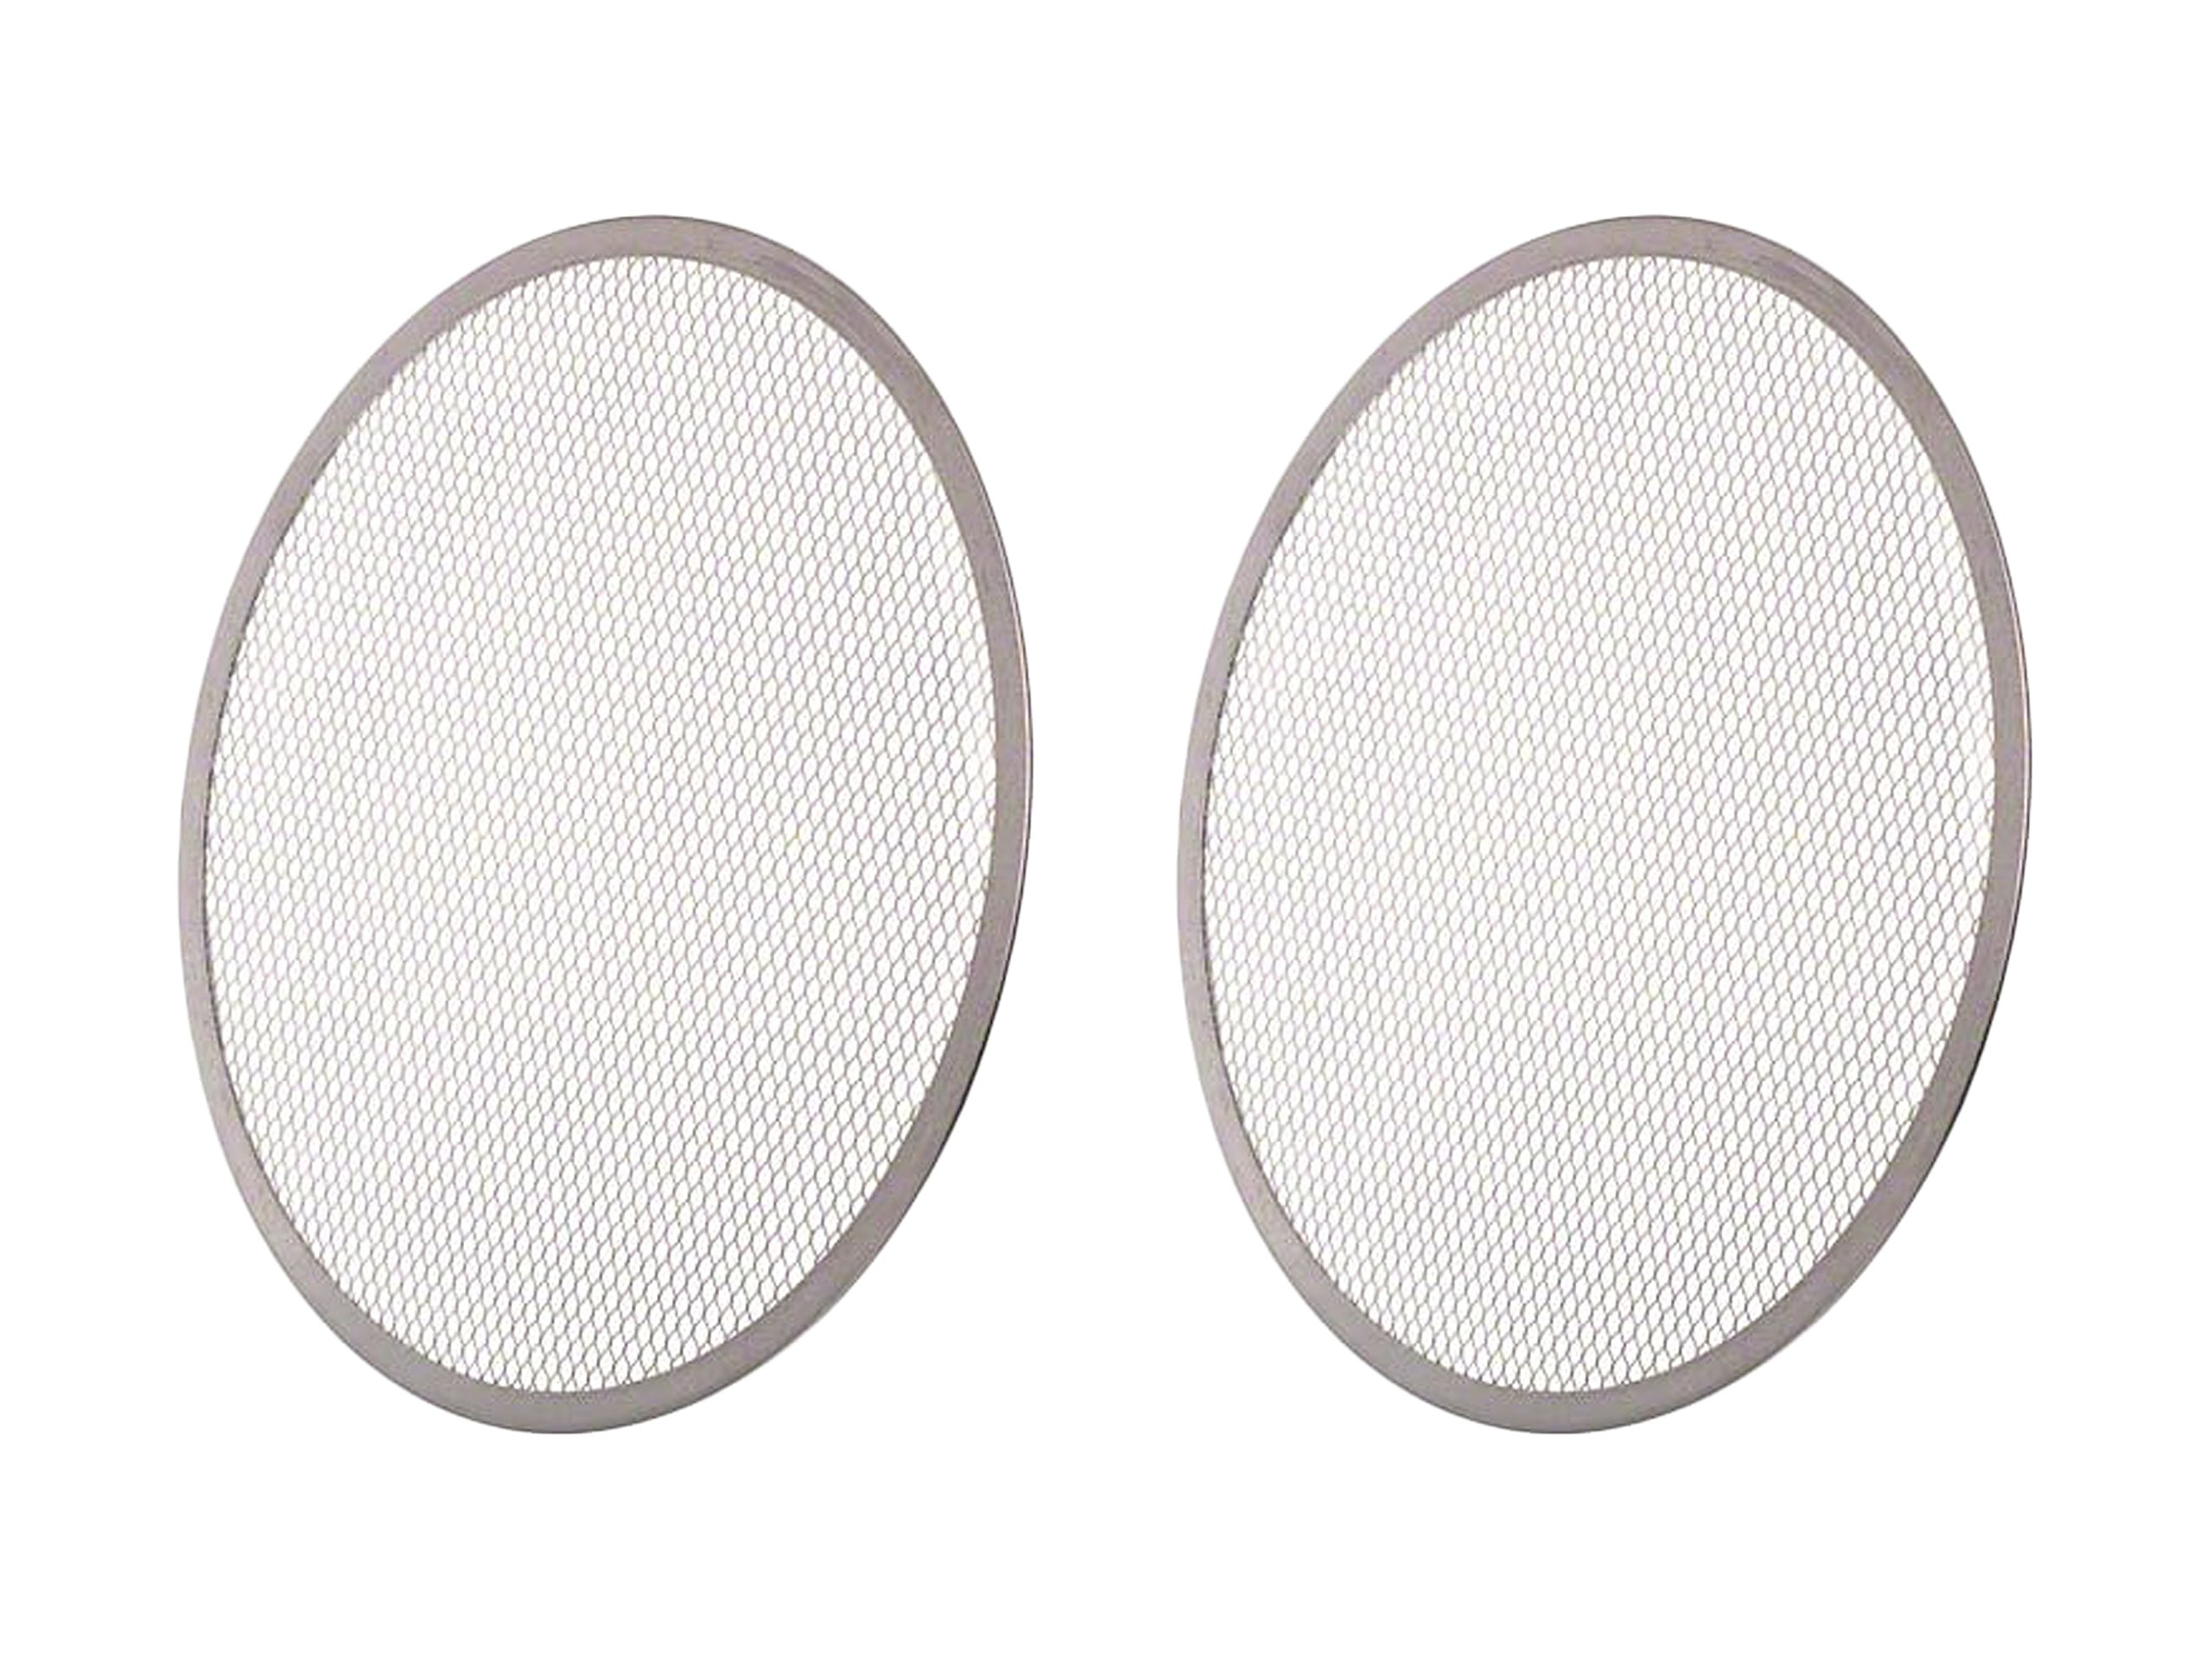 Set of 2 Update International (PS-14) 14'' Pizza Screen bundled by Maven Gifts